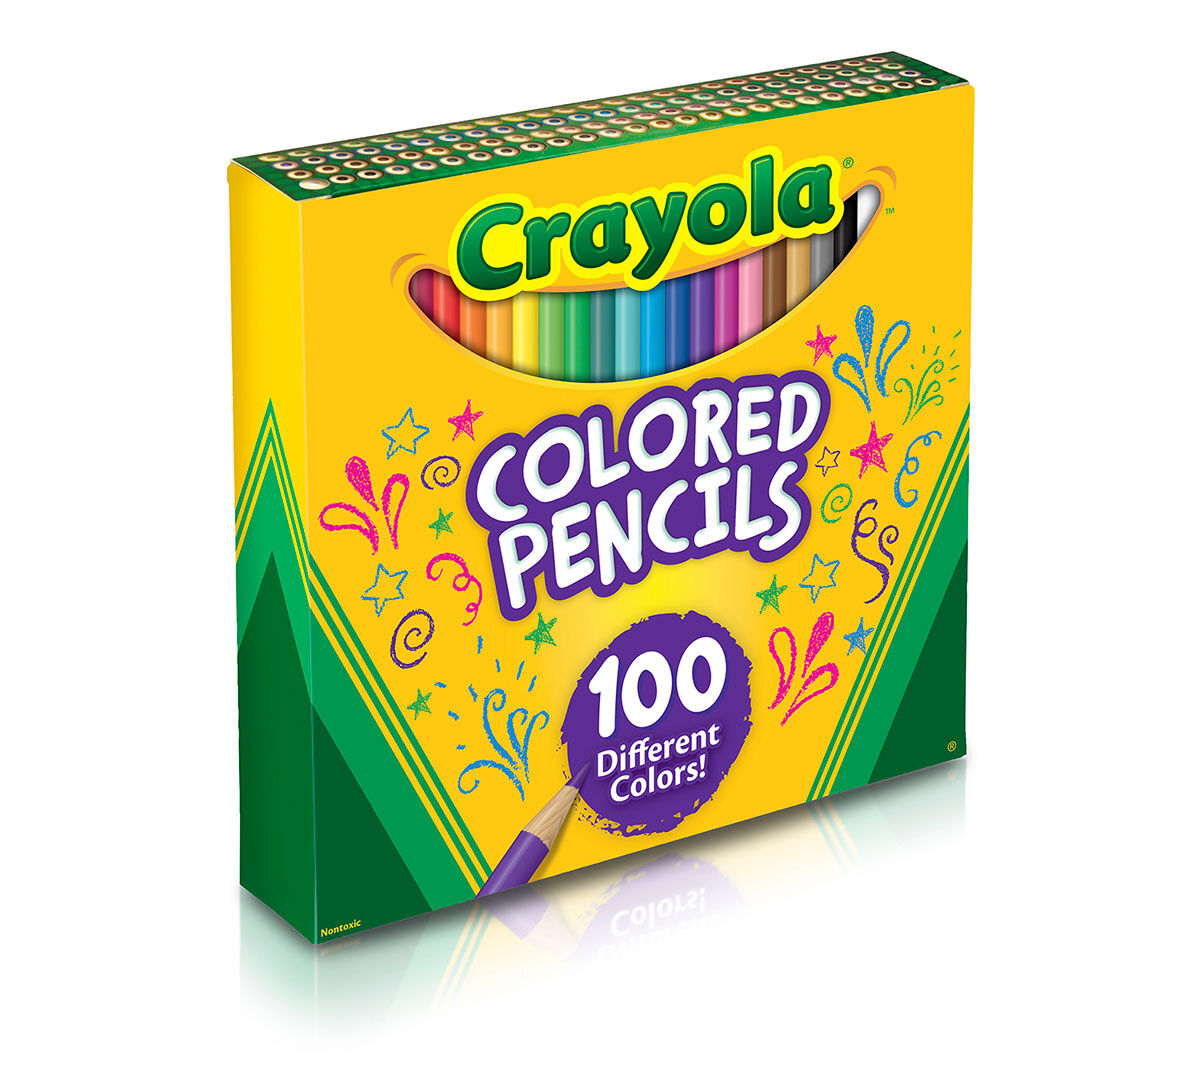 Xxssi Ibegetwccimage as well Plush Intippink besides Super Tips Washable Markers Ct B furthermore Agedupcoloring Dualendedcoloredpencils Ct H besides Ct Crayons Bluetiful Tag. on crayola color by number